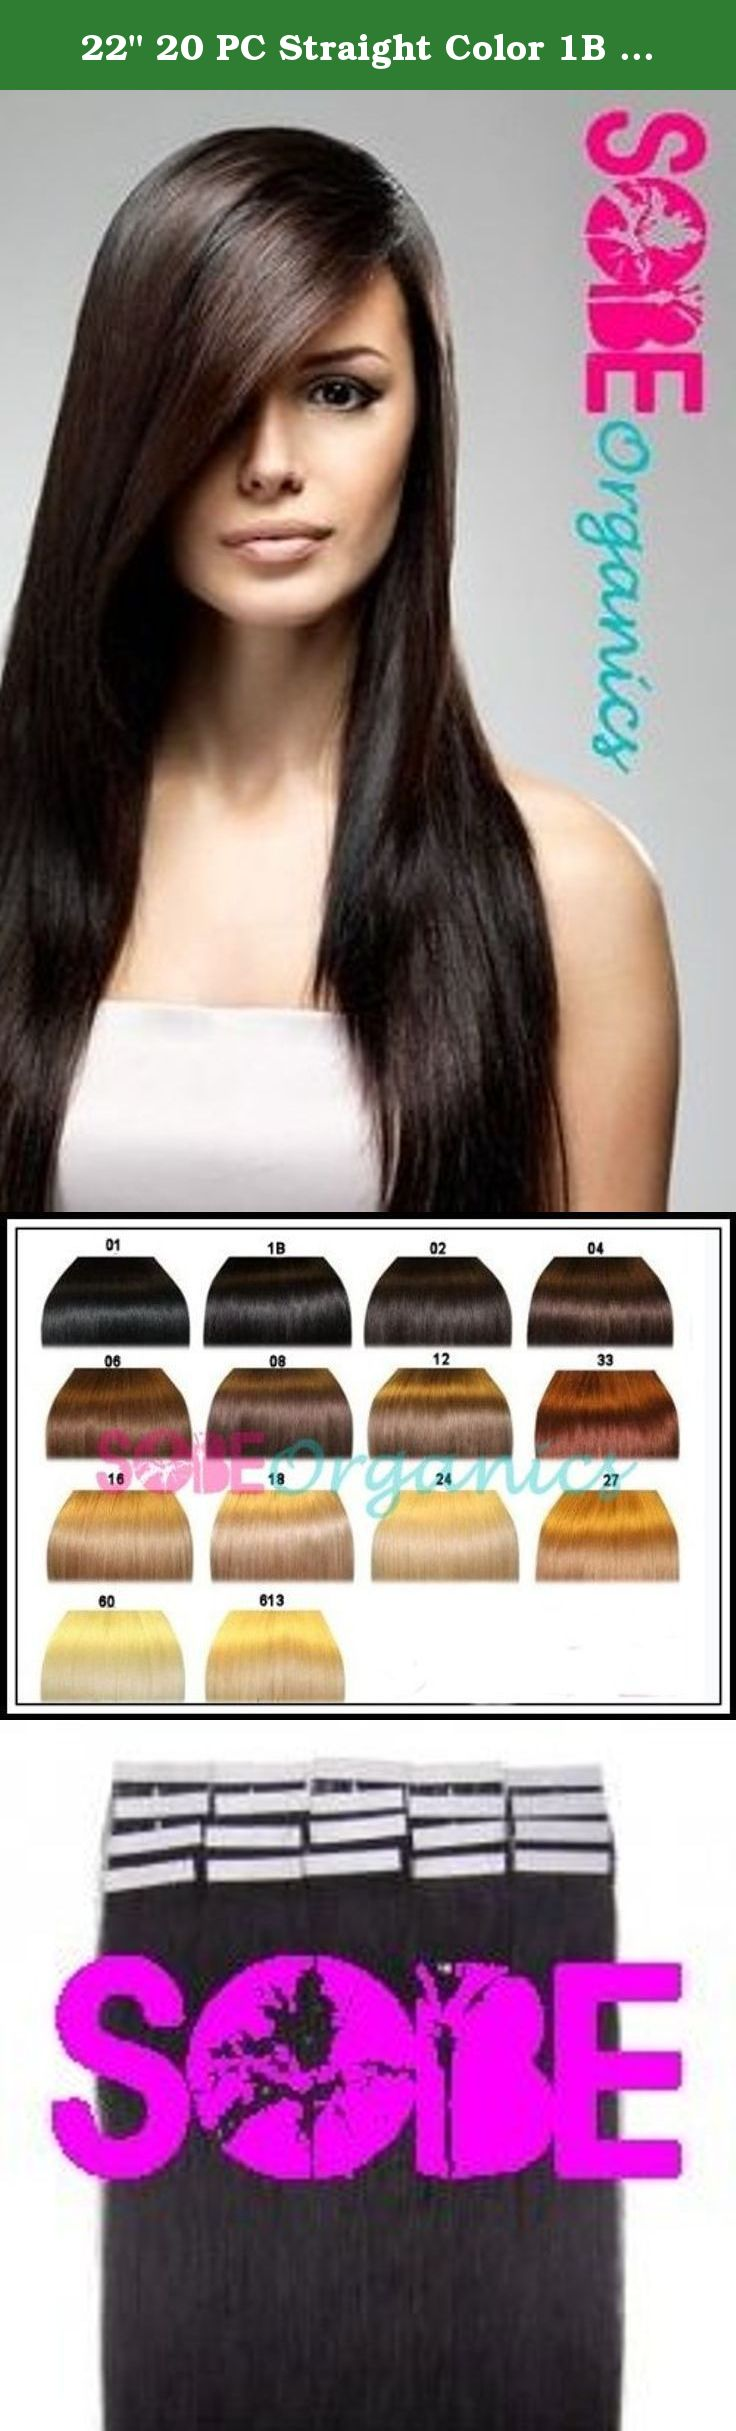 22 20 pc straight color 1b off black remy tape human hair 20 pc straight color off black remy tape human hair extensions our human remy hair comes in packs of 20 for volumizers highlights or lowlights pmusecretfo Choice Image